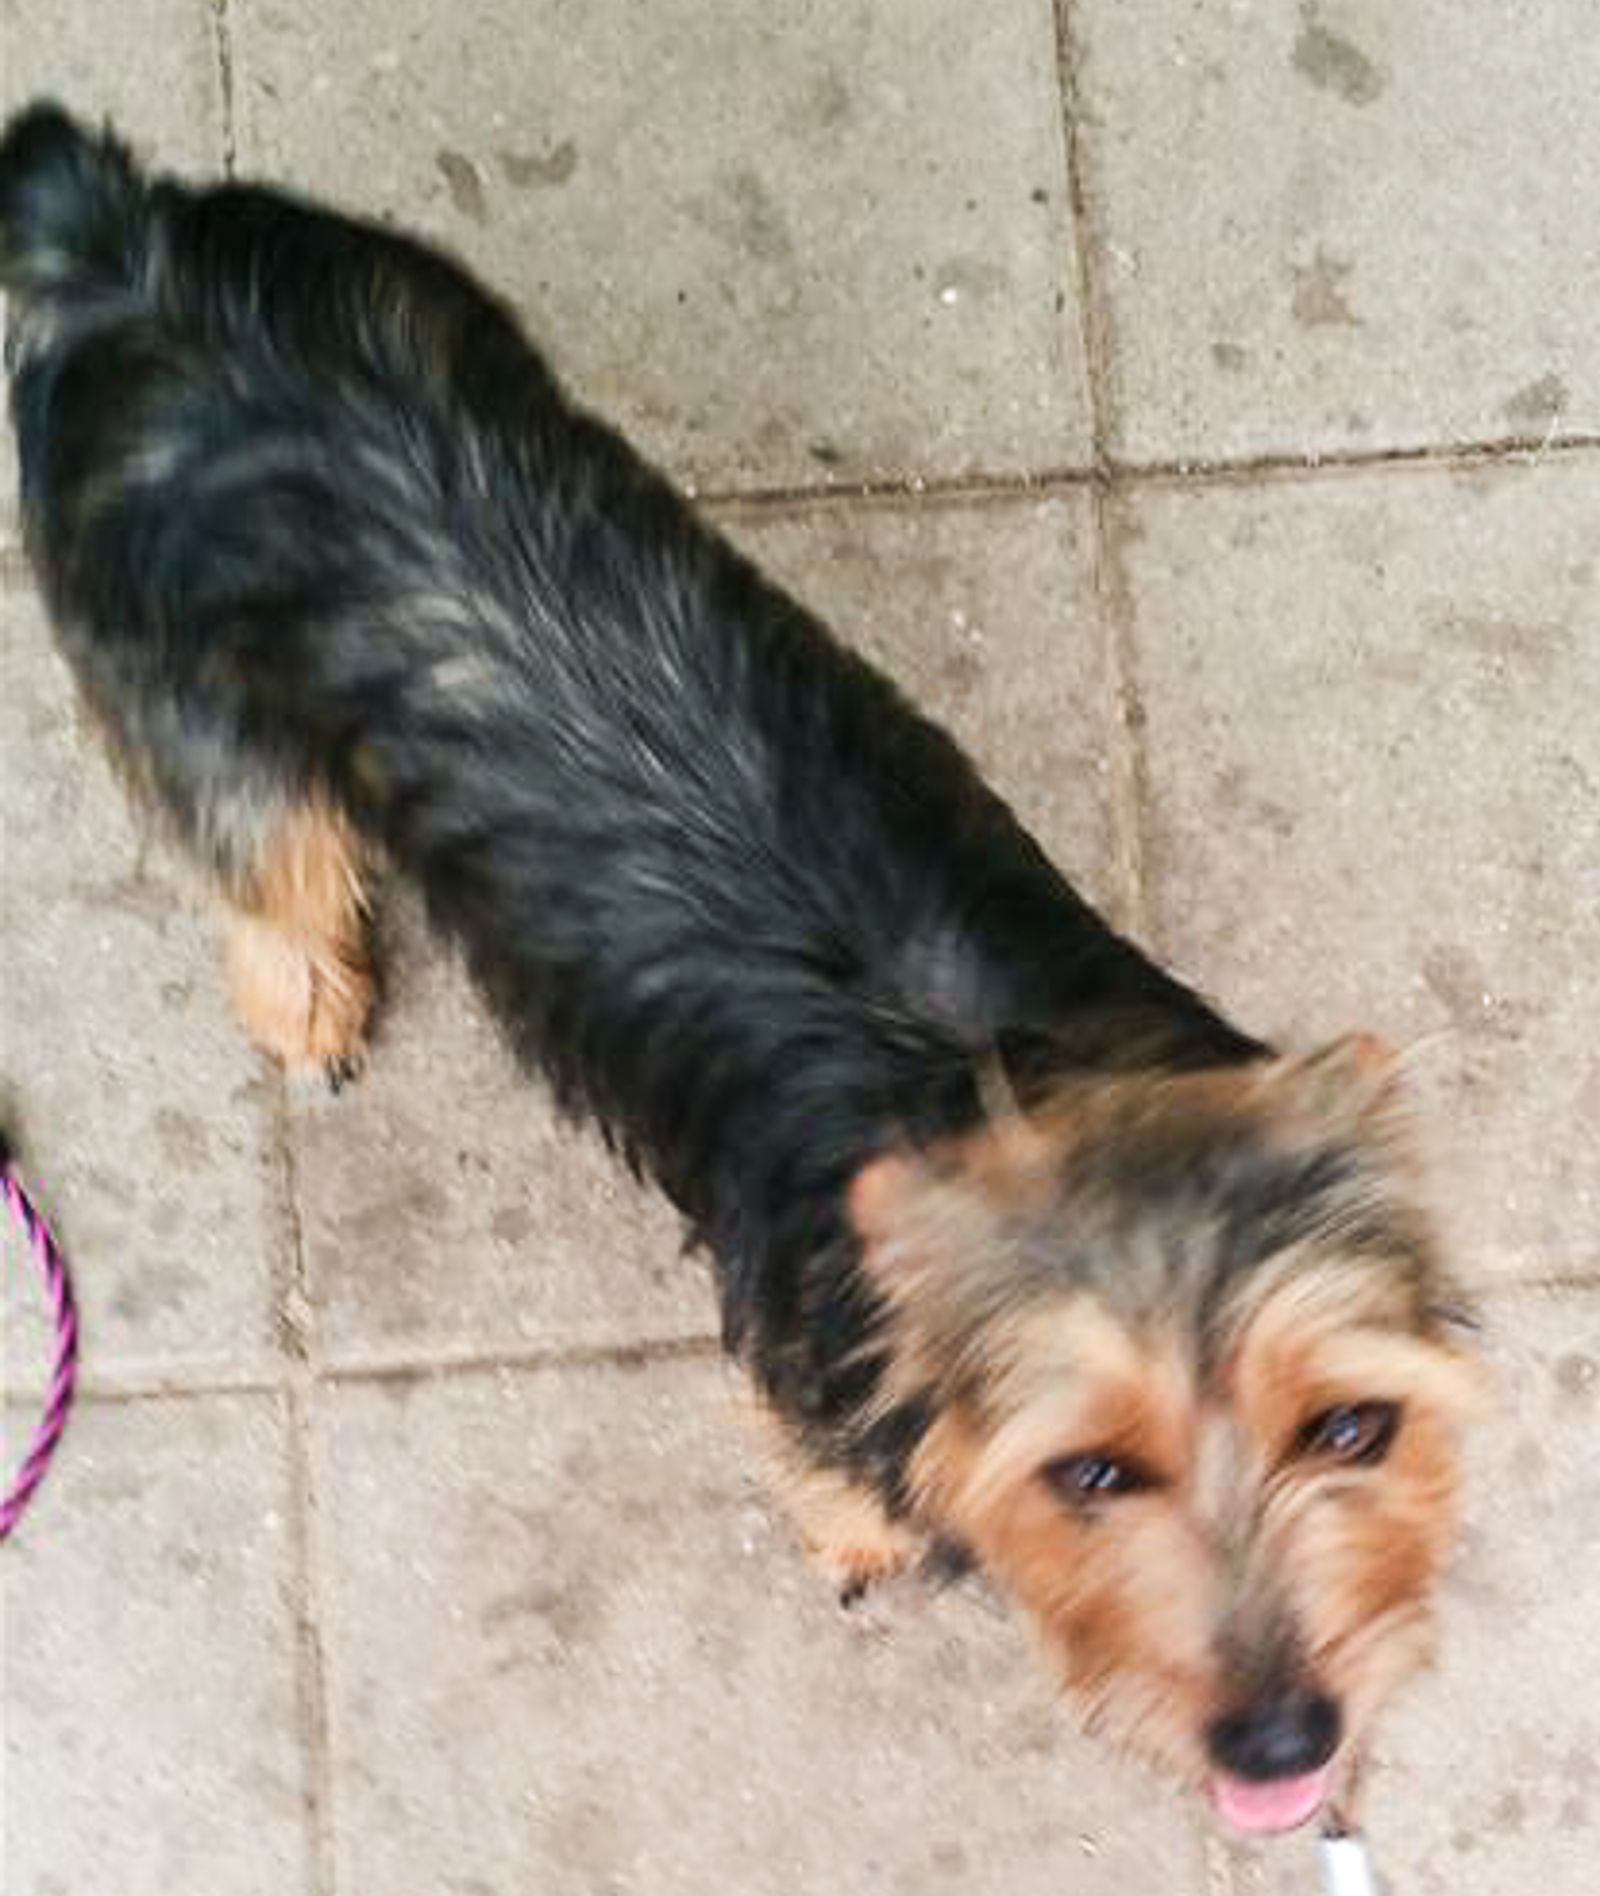 Found Dog - Terrier - Minerva, OH, United States 44657 on July 28, 2016 (07:45 AM)